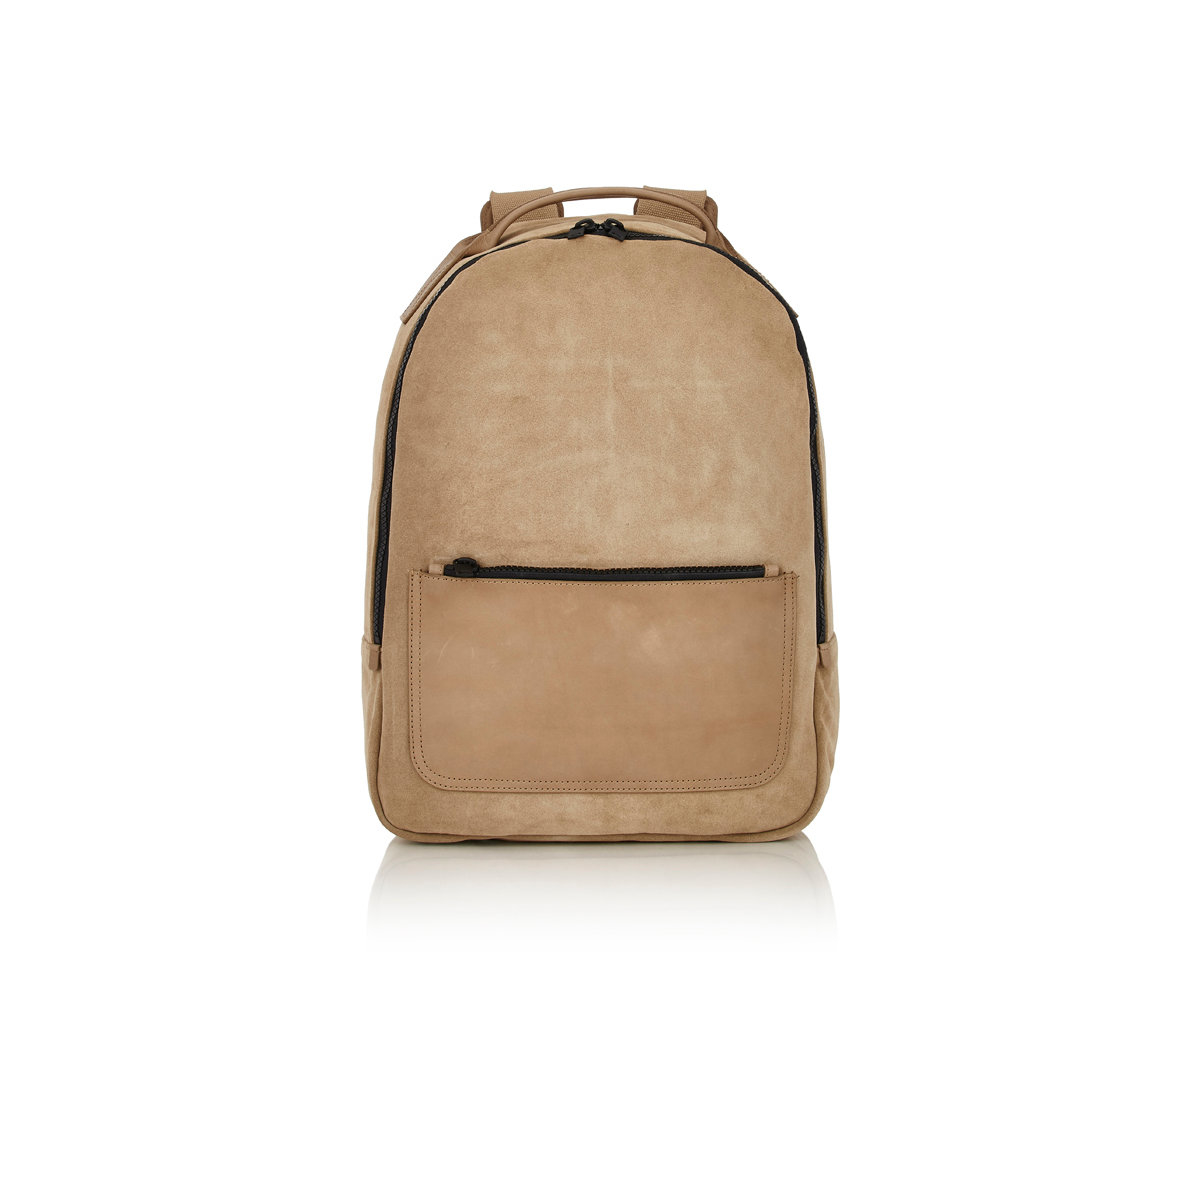 26f7c58f93b2 Lyst - Yeezy Zip-Around Suede Backpack in Natural for Men